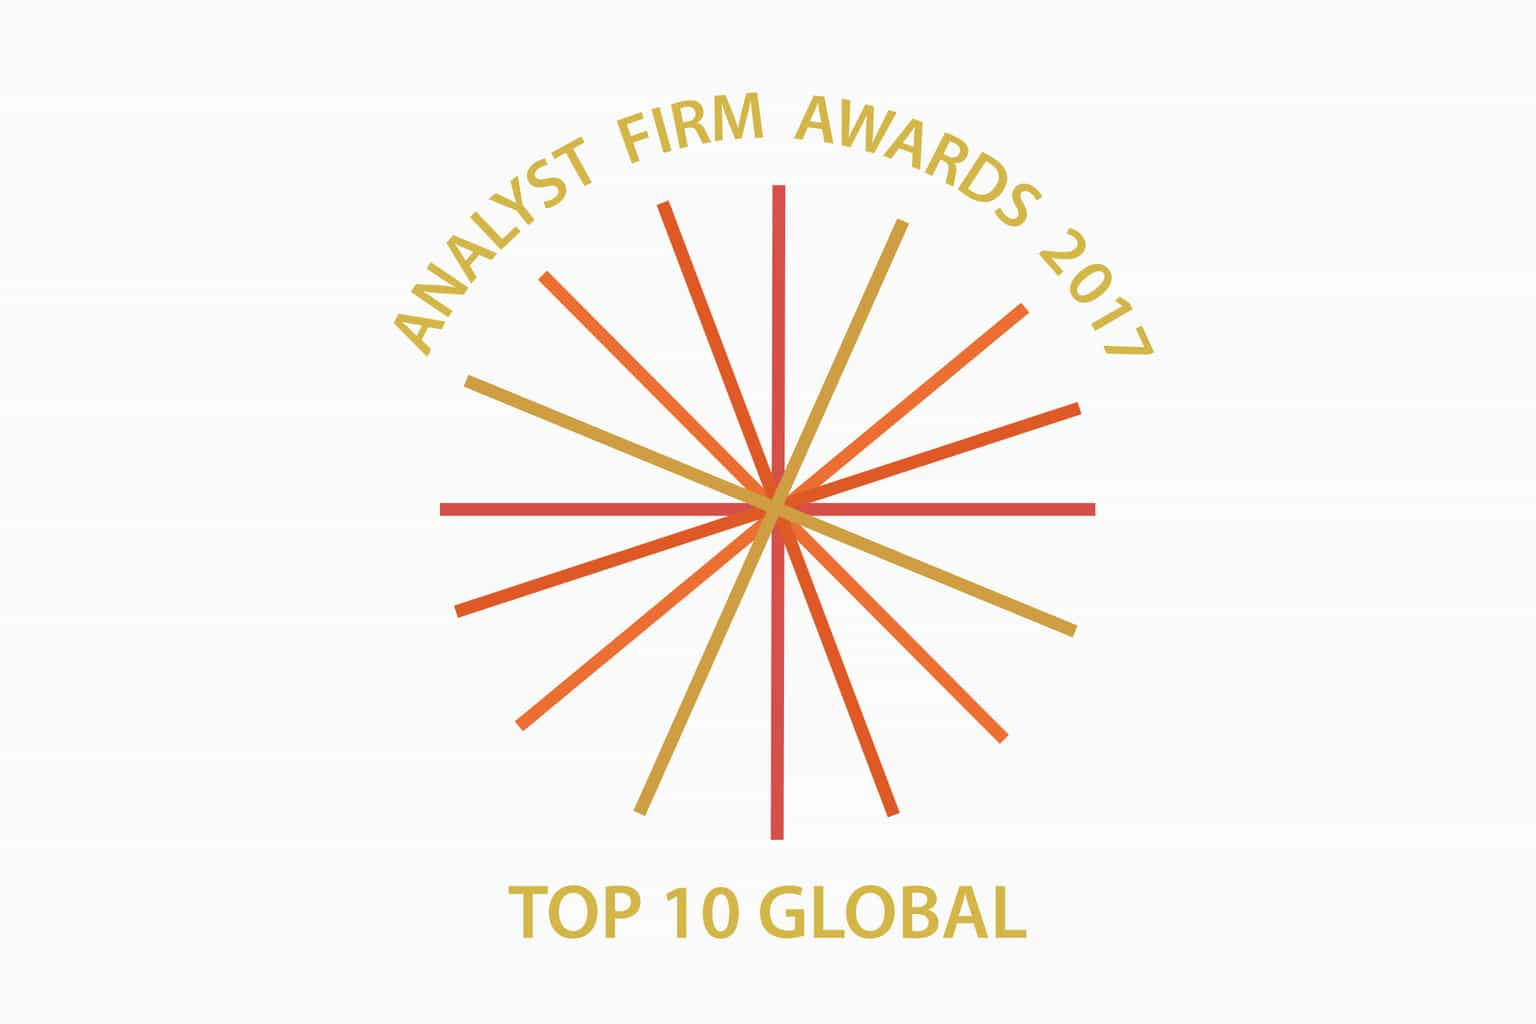 IDC overtakes HfS in 2017 global Analyst Firm Awards